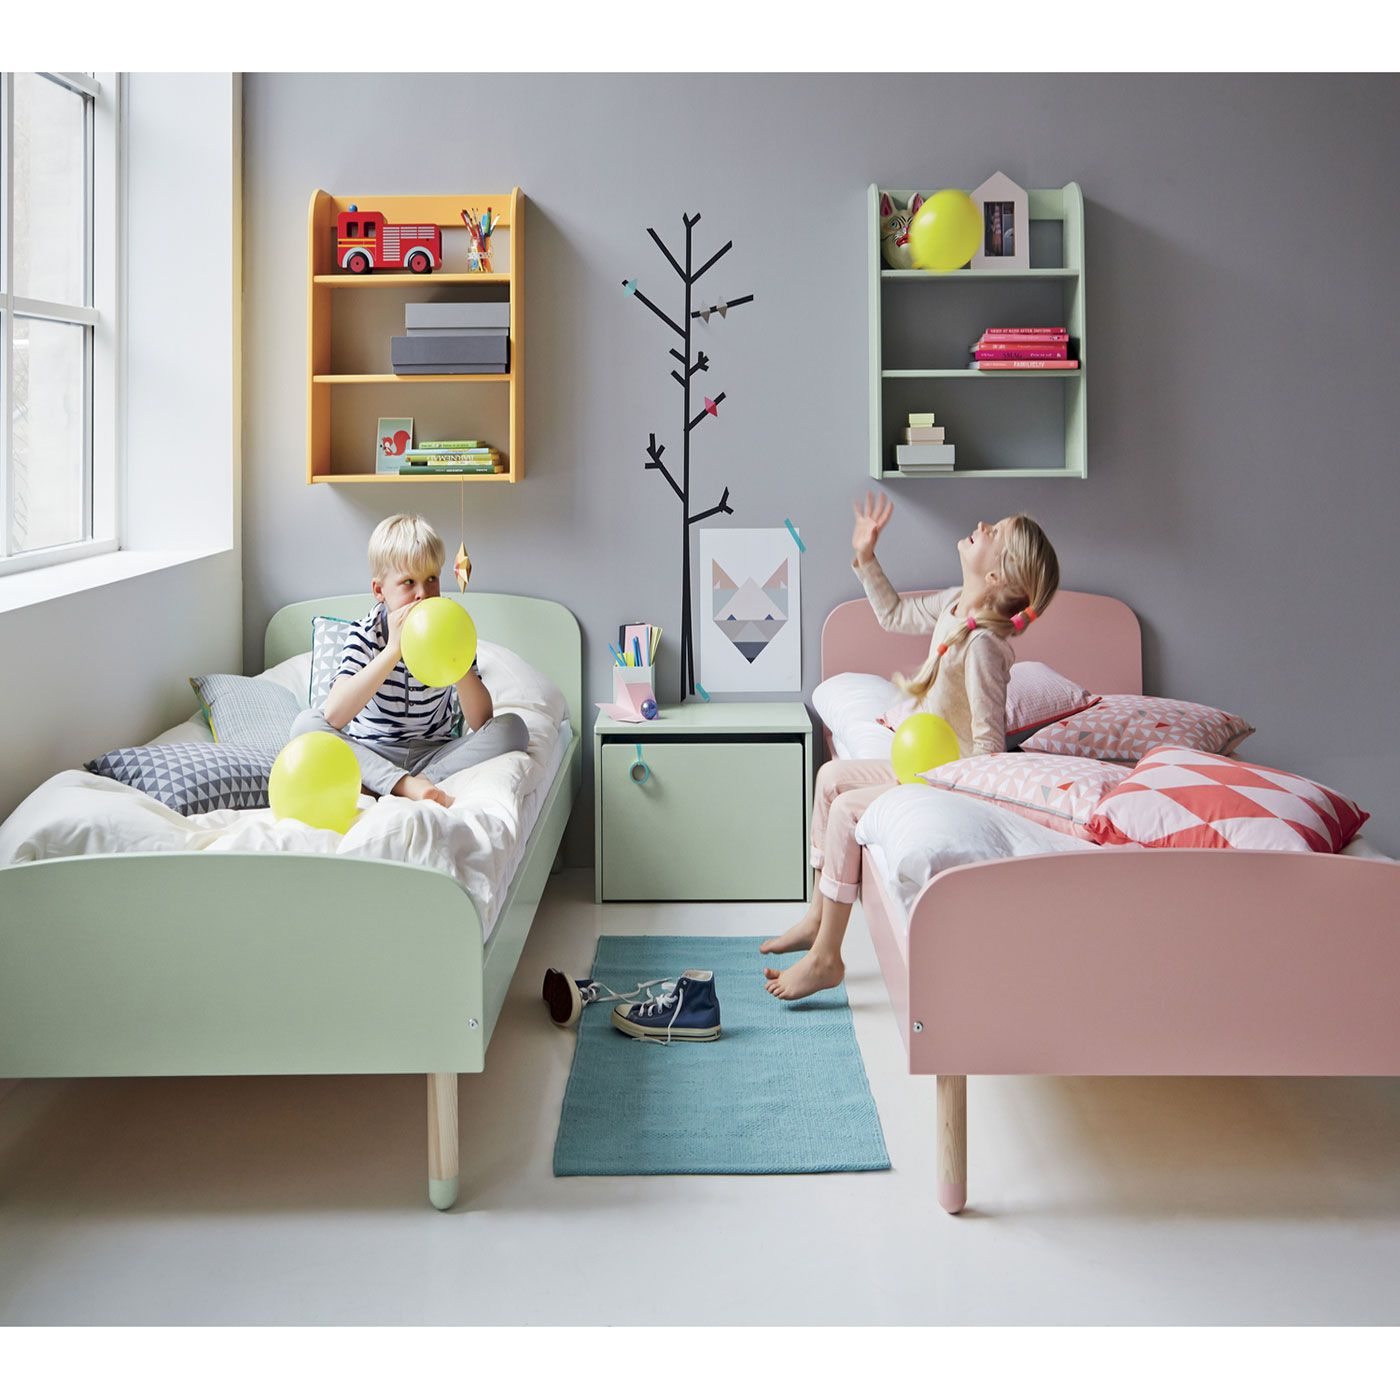 FLEXA Play junior bed with a modern retrolook is perfect